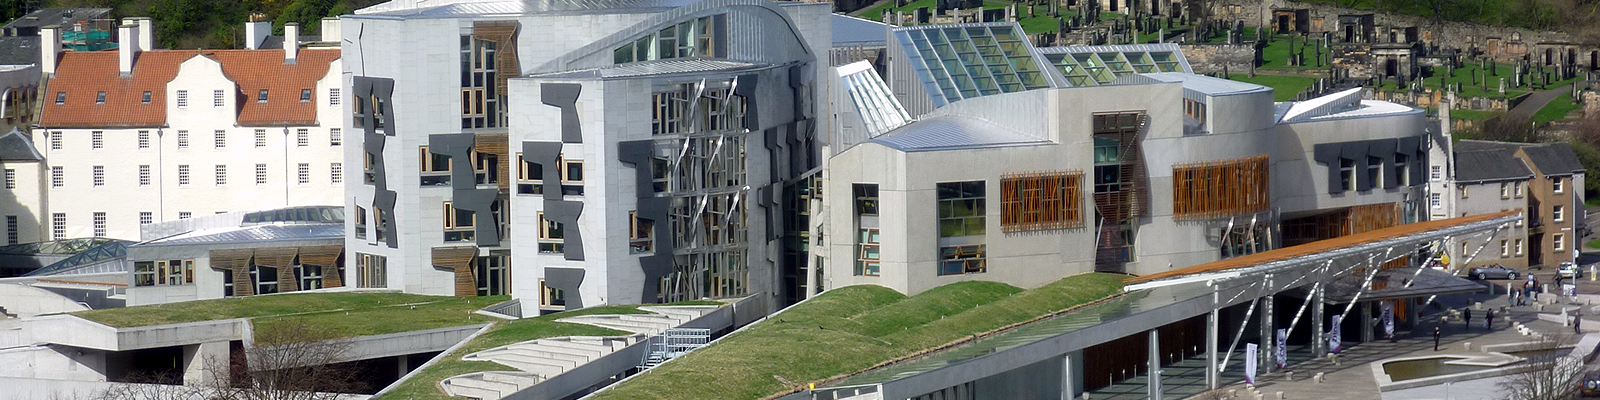 holyrood-bldg-400px.png